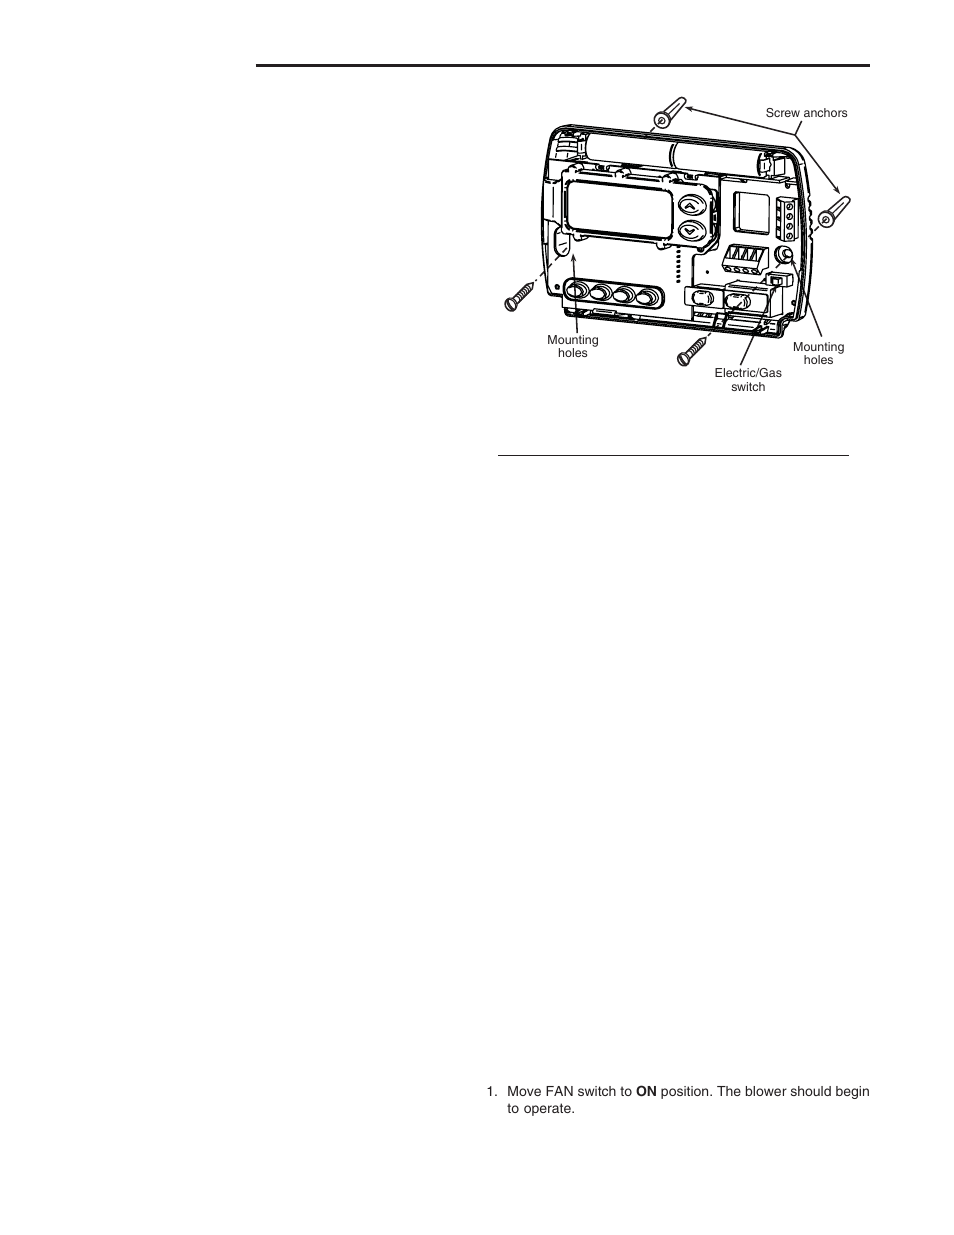 Installation White Rodgers 1f80 361 User Manual Page 2 16